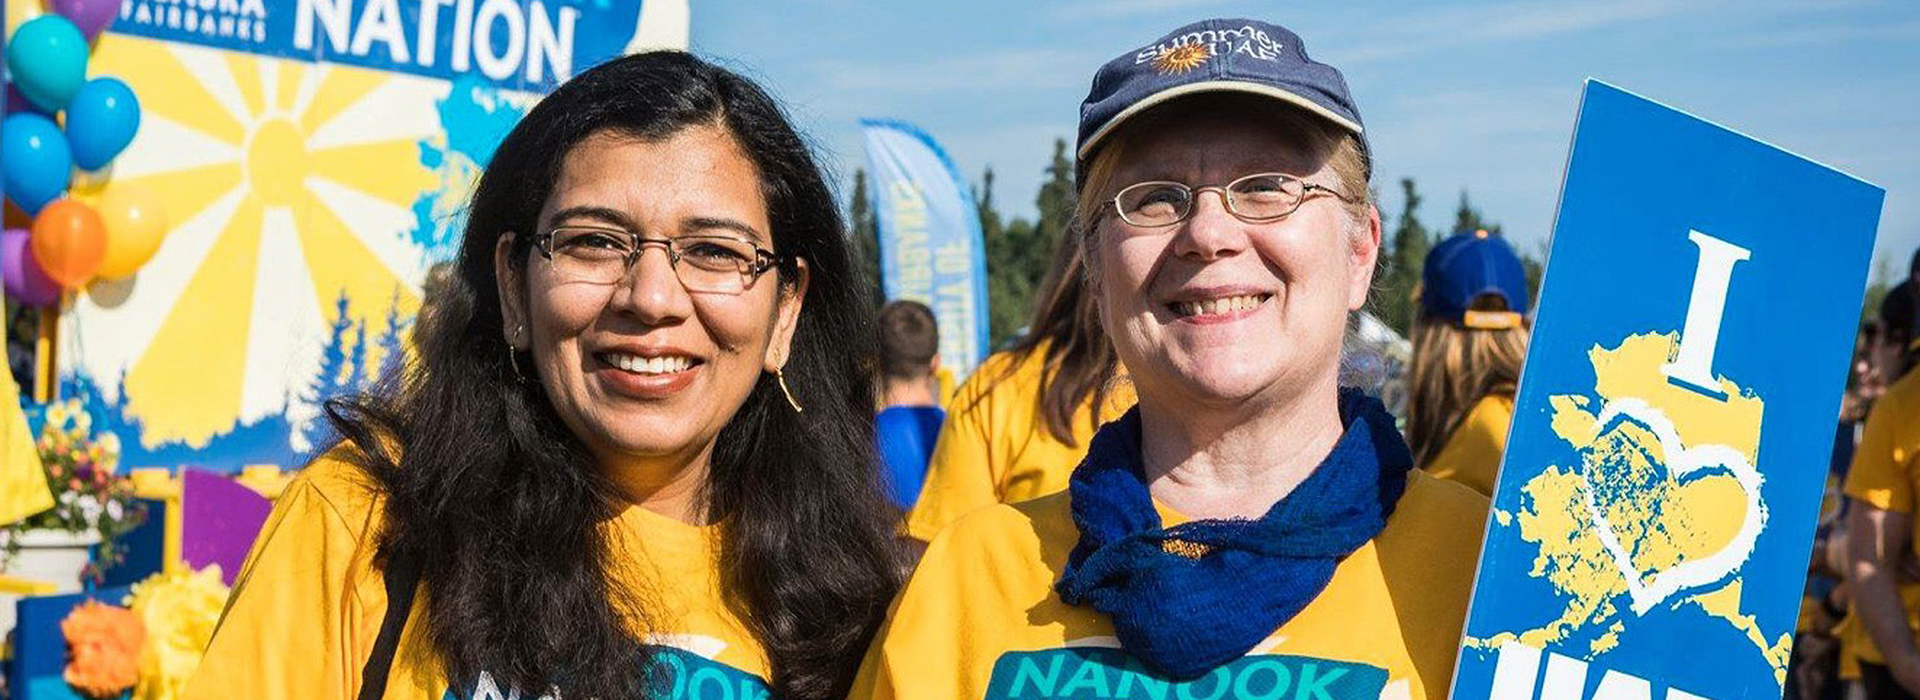 Provost Anupma Prakash with former Provost Susan Hendricks participating in the Golden Days Parade.